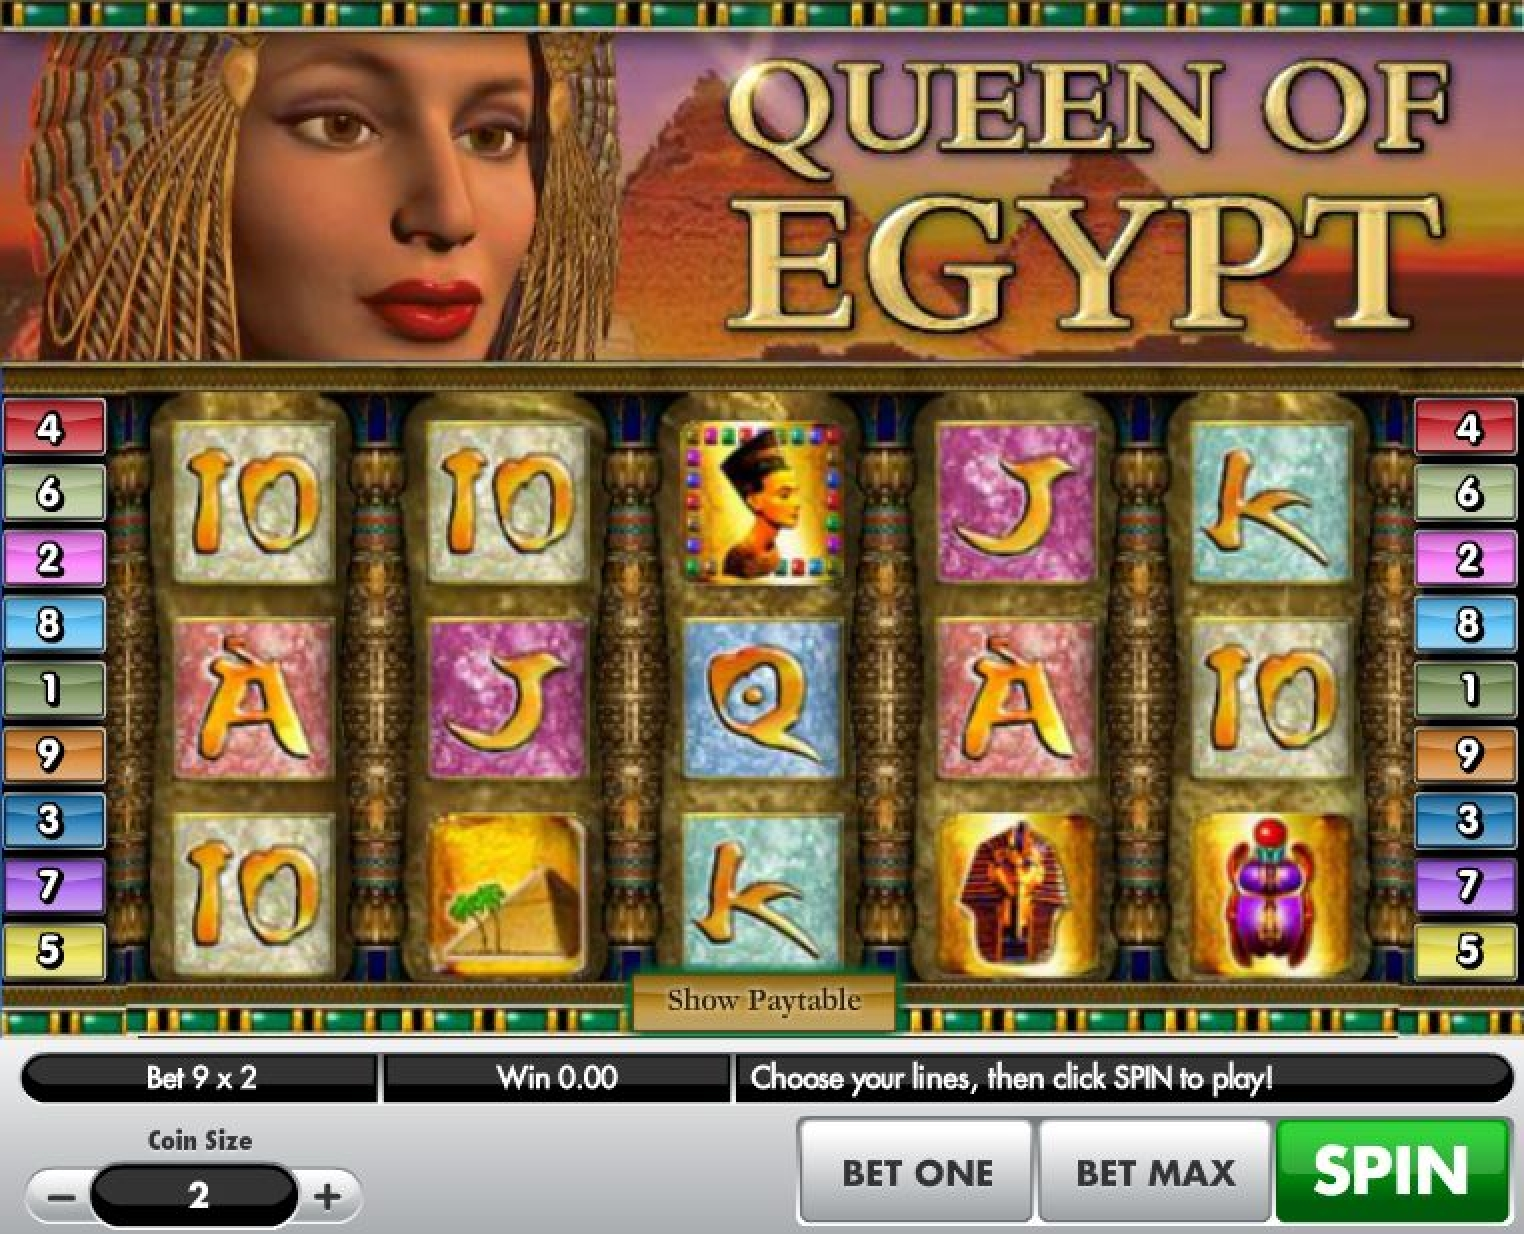 The Queen of Egypt 2019 Online Slot Demo Game by Gamesys